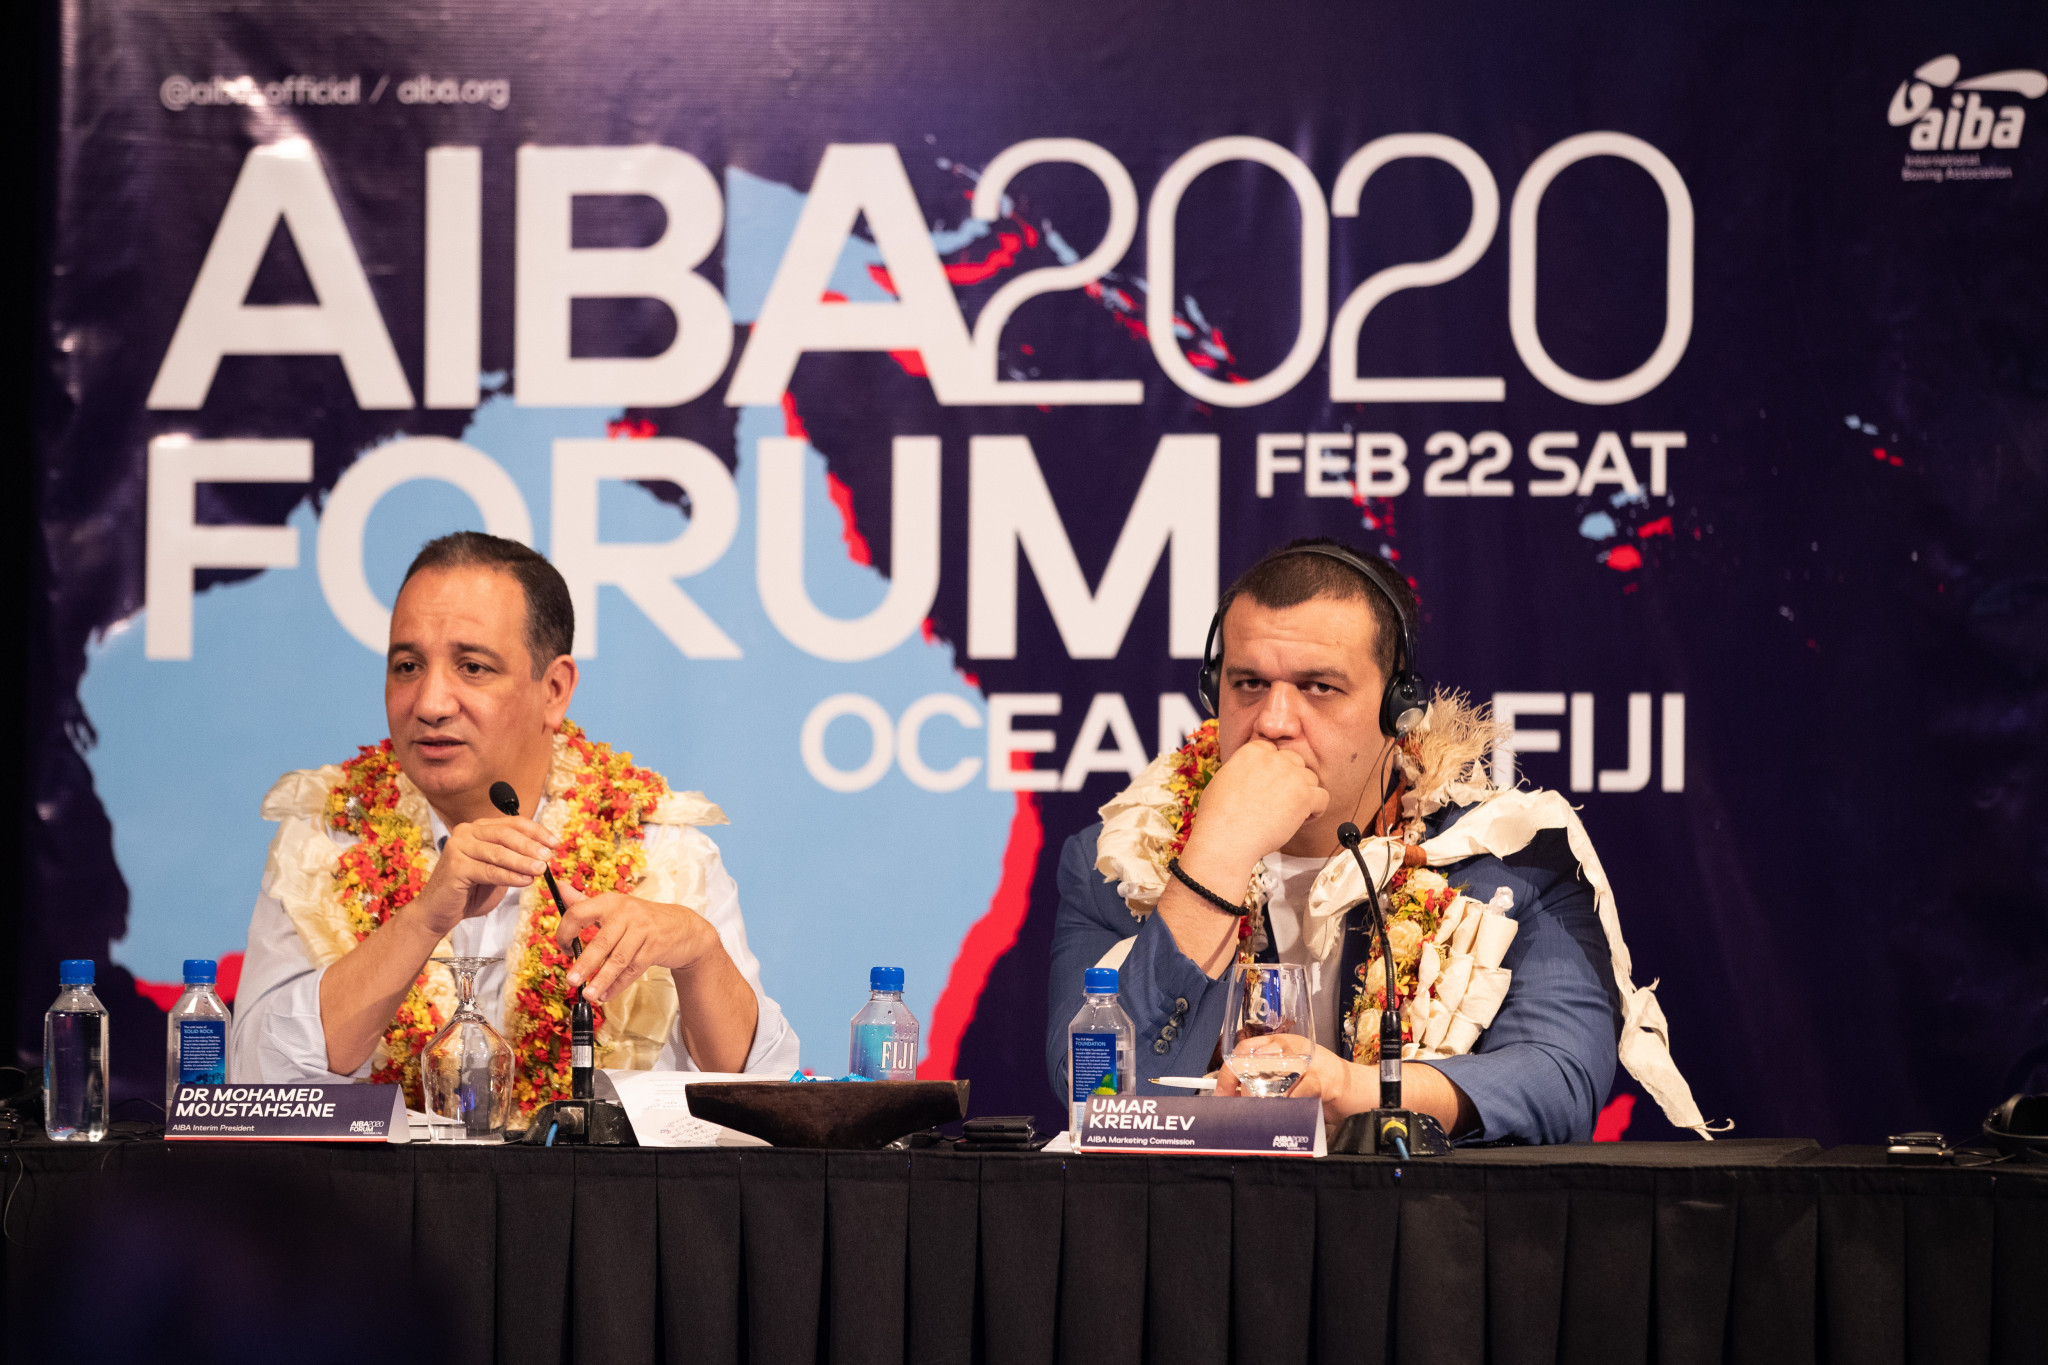 The AIBA leadership visited Fiji for the Continental Boxing Forum for Fiji ©AIBA